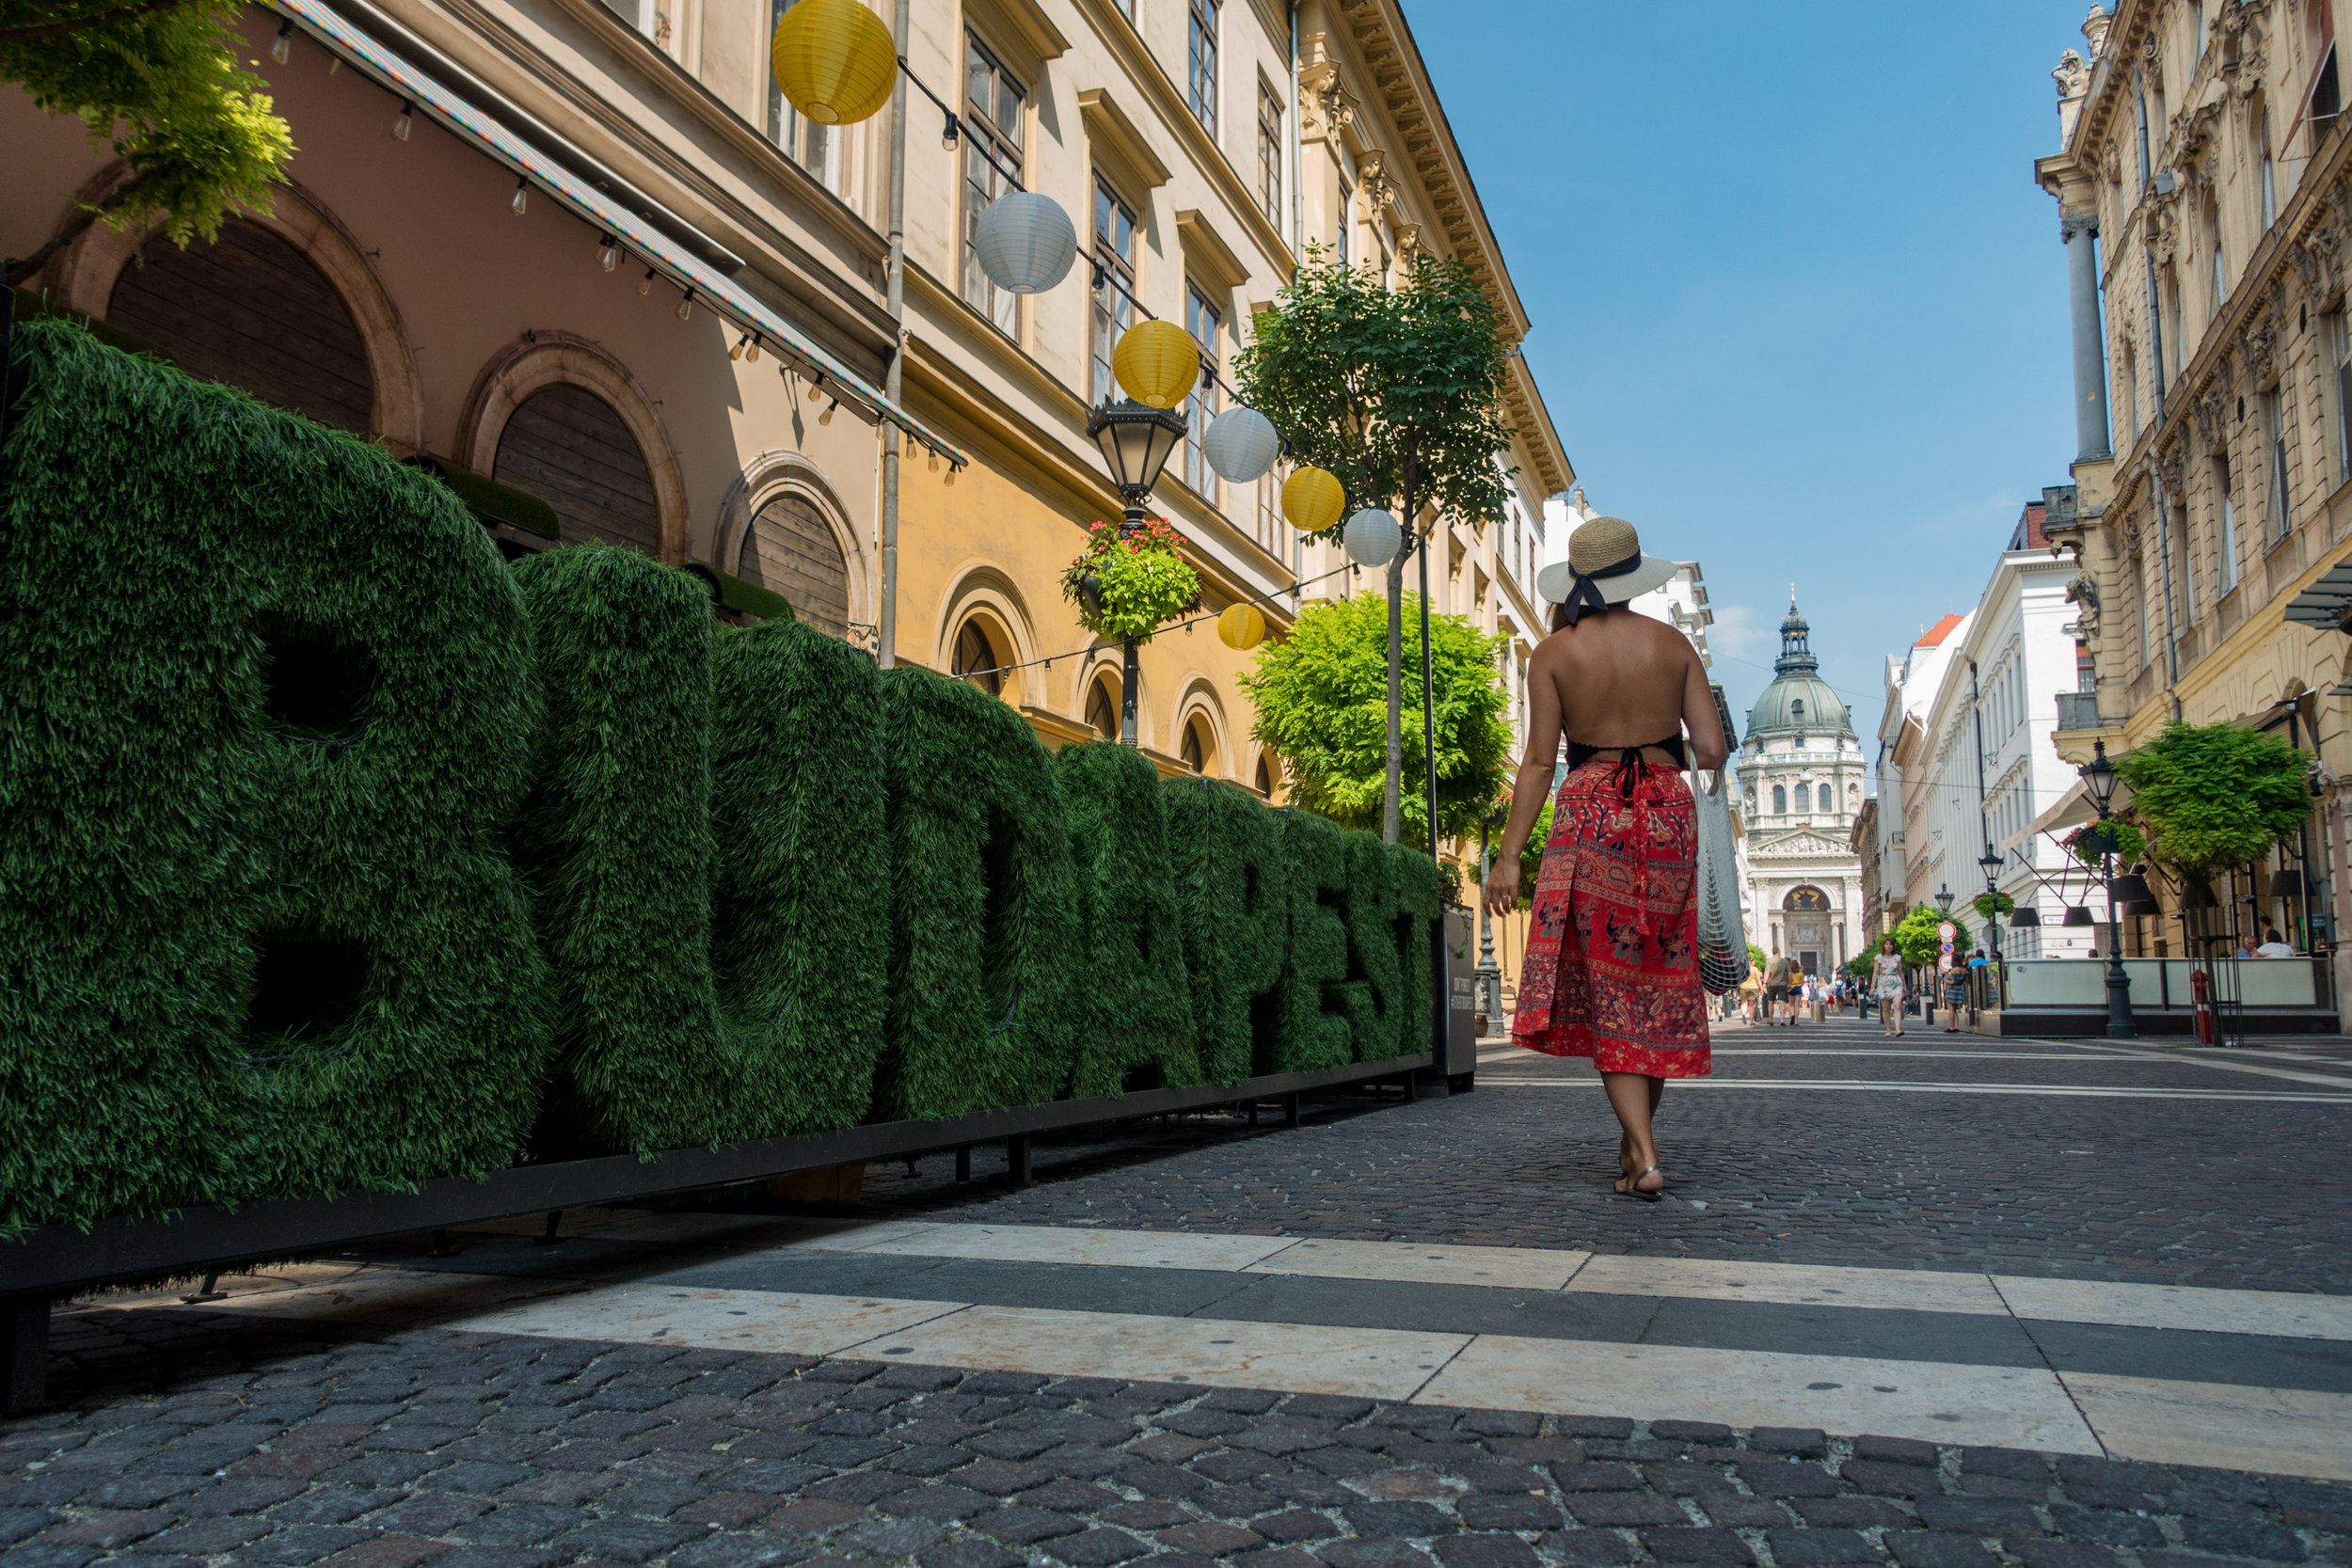 1.)Budapest, Hungary - Parking is freely available in the city and when you are ready to settle in for the night, park overnight for free next to the Szechenyi Baths.